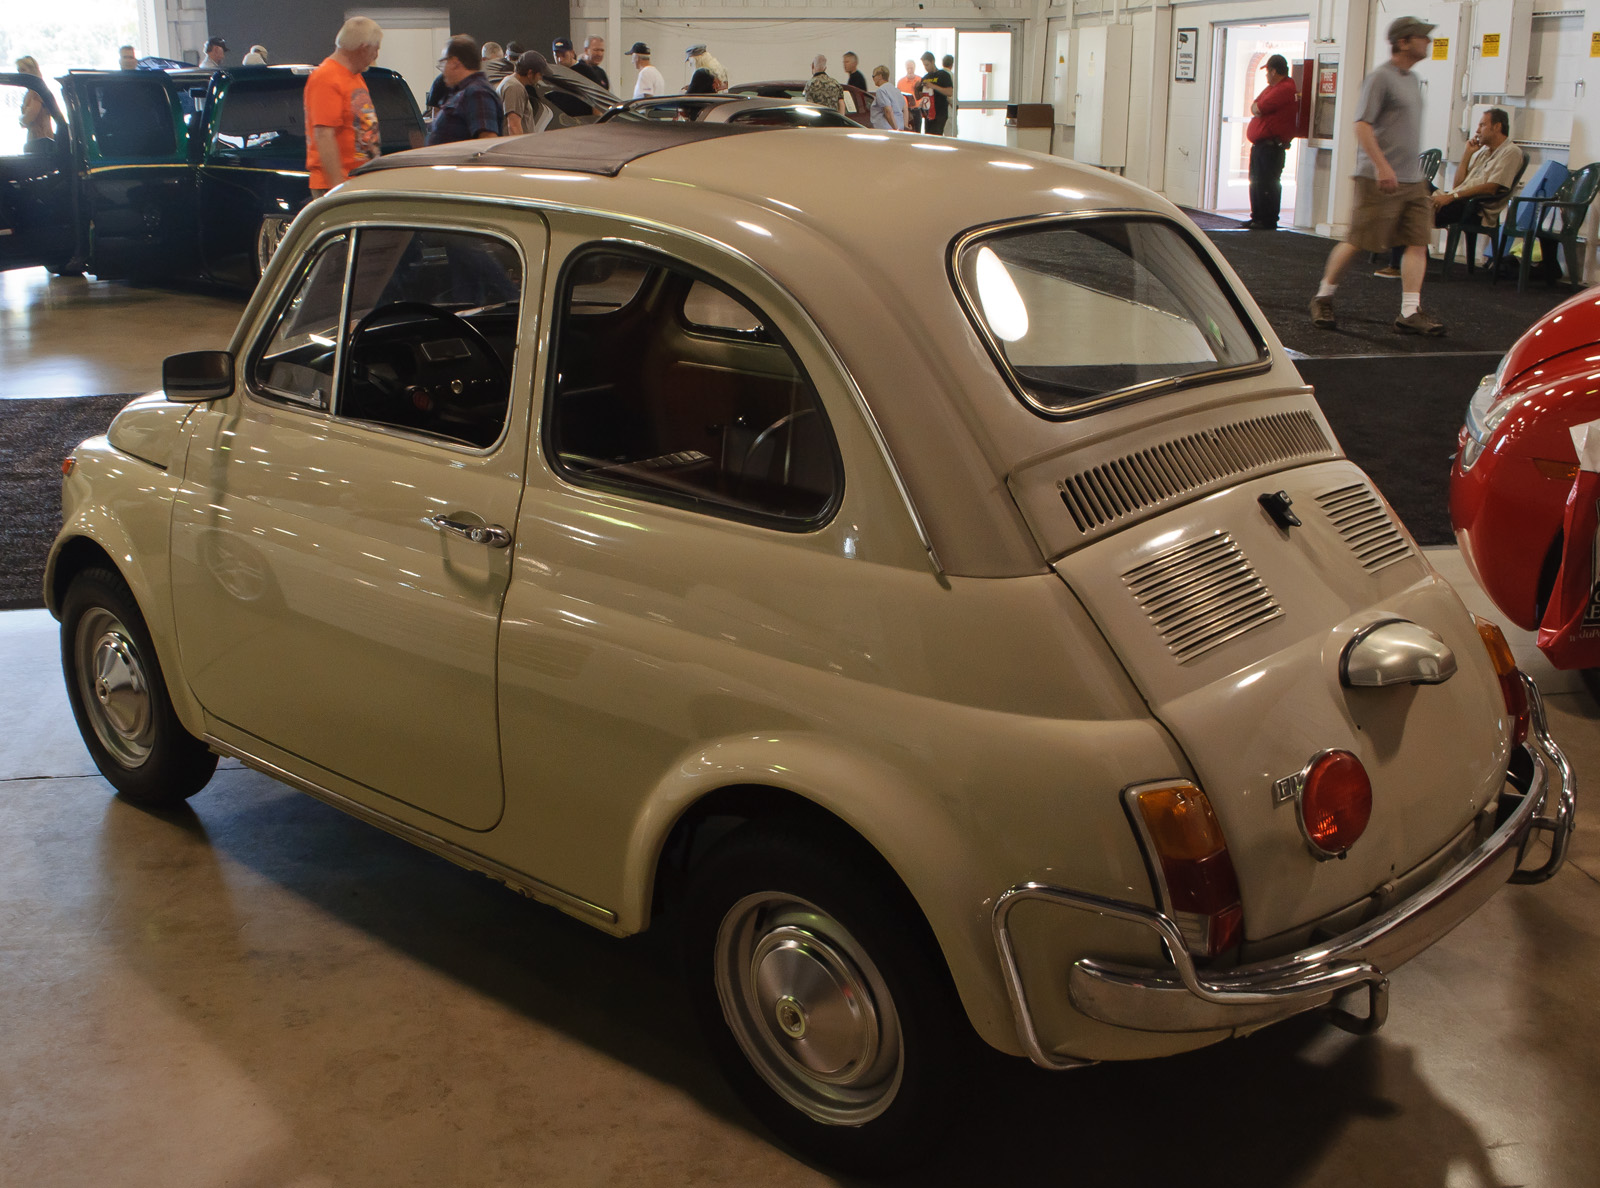 barnaby outdoor image barnabysgarage and garage fiat may contain acquisition id s car media latest photos pcb spider